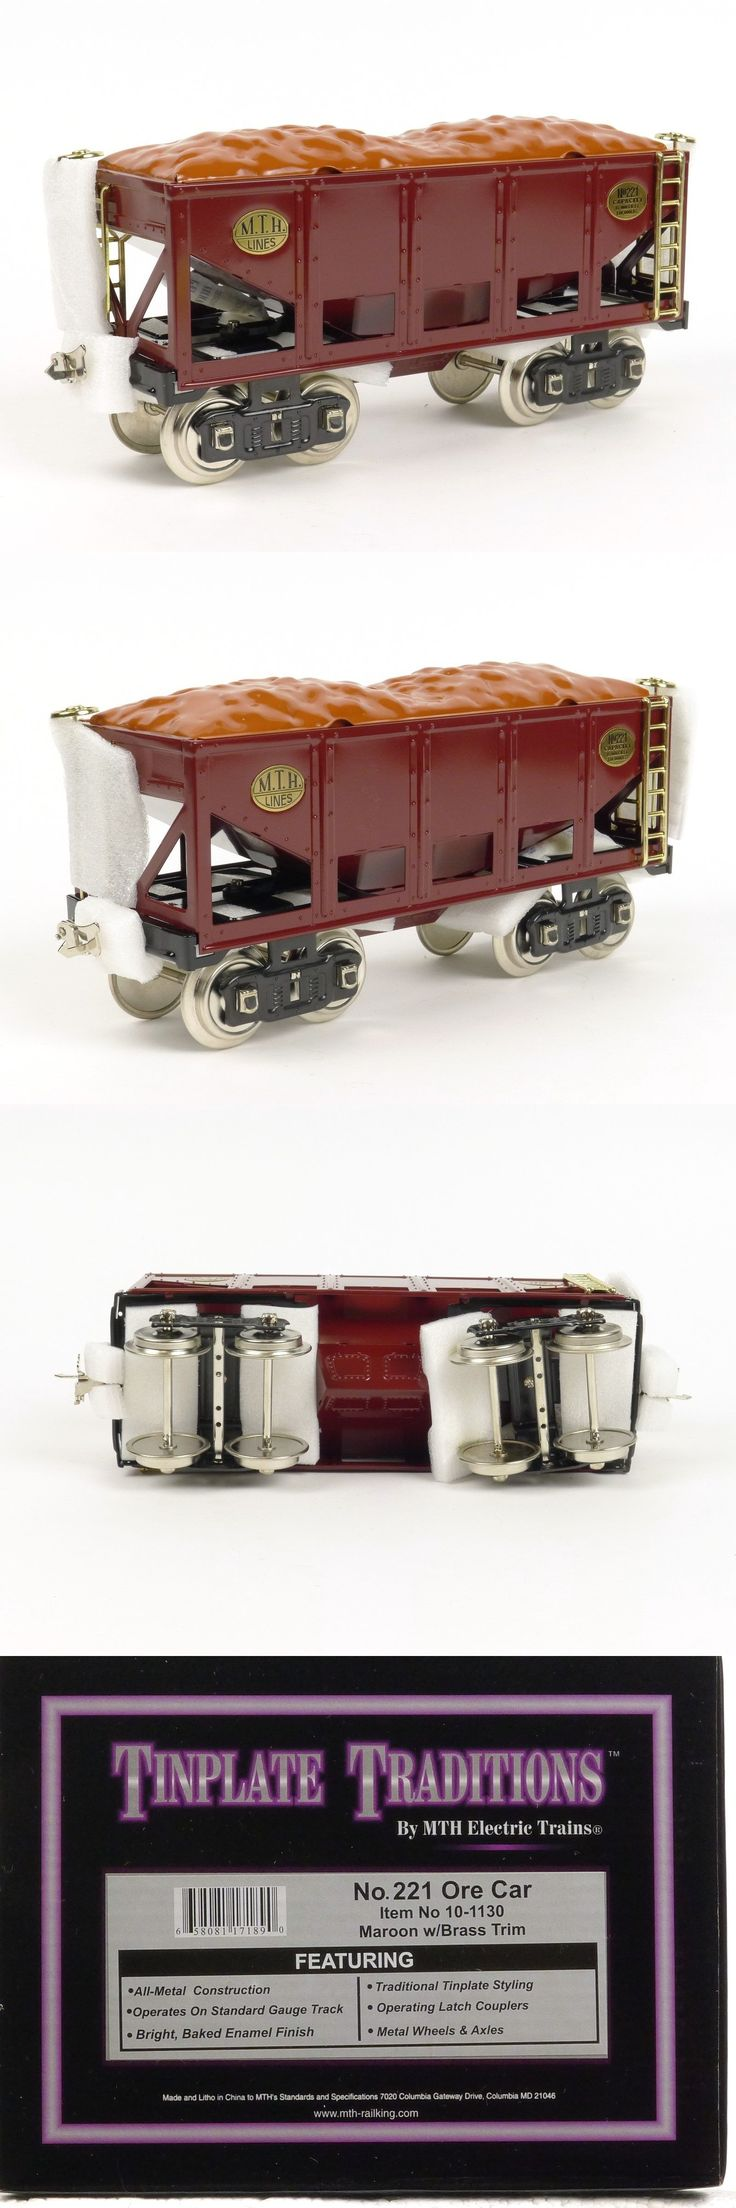 Freight Cars 180326: Mth Tinplate Traditions 10-1130 Ore Car No 221 Standard Gauge Model Trains -> BUY IT NOW ONLY: $109.95 on eBay!